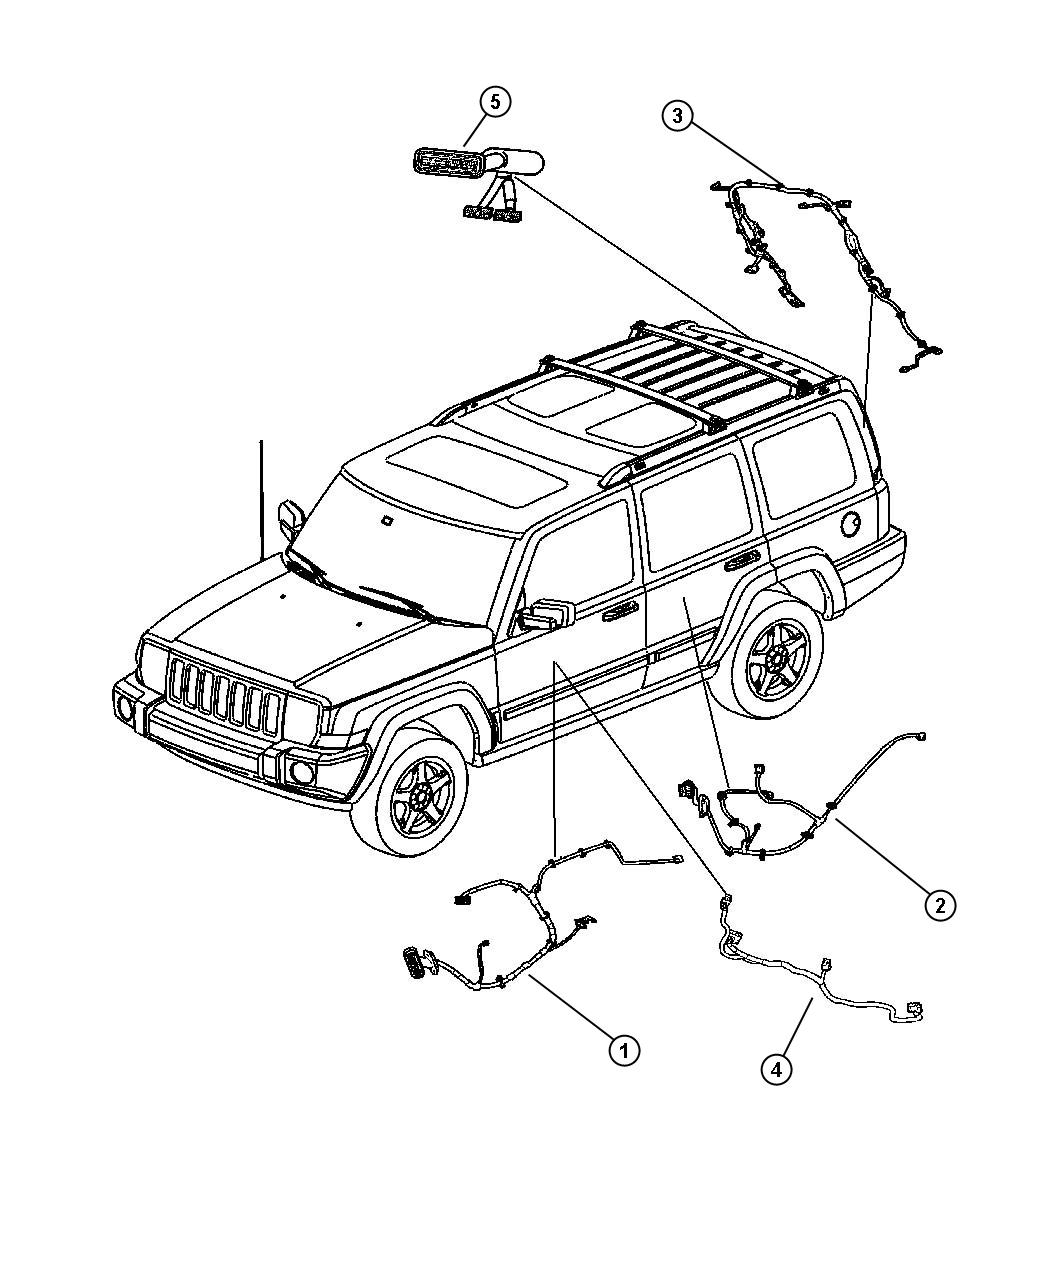 2006 Jeep Commander Wiring. Liftgate. Base. Back, camera